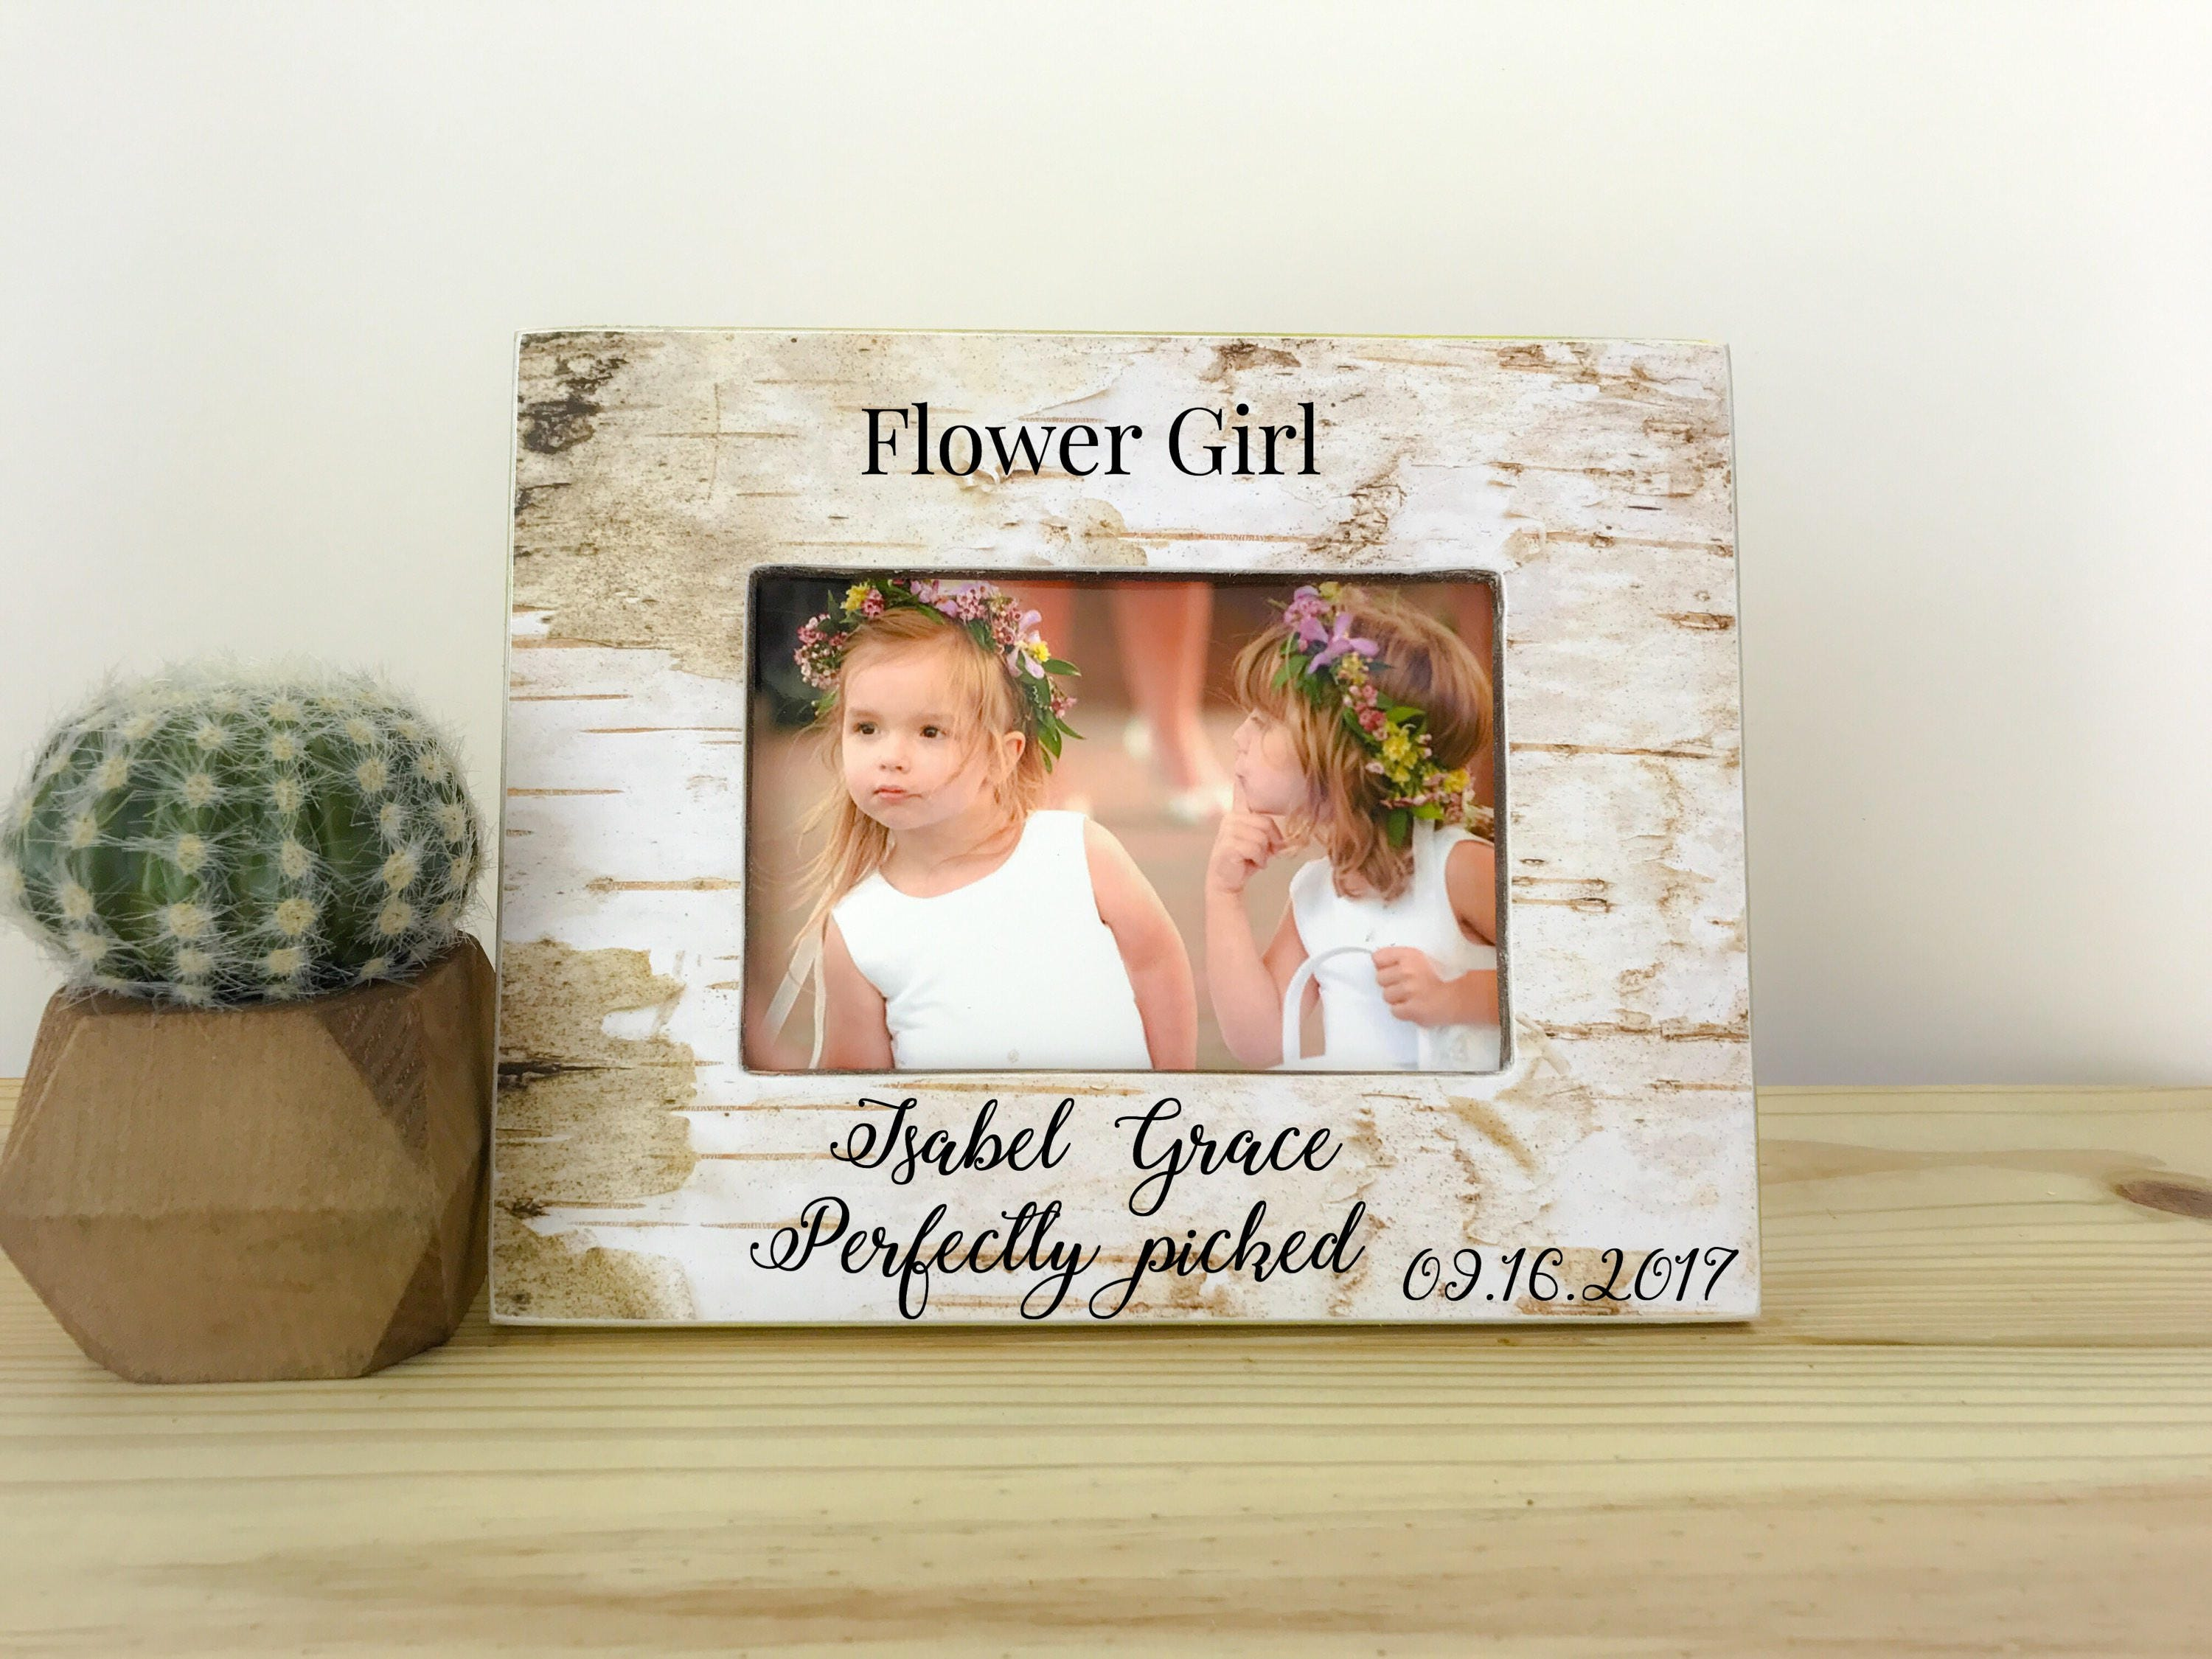 Flower girl frame. Personalized picture frame. Wedding gift.